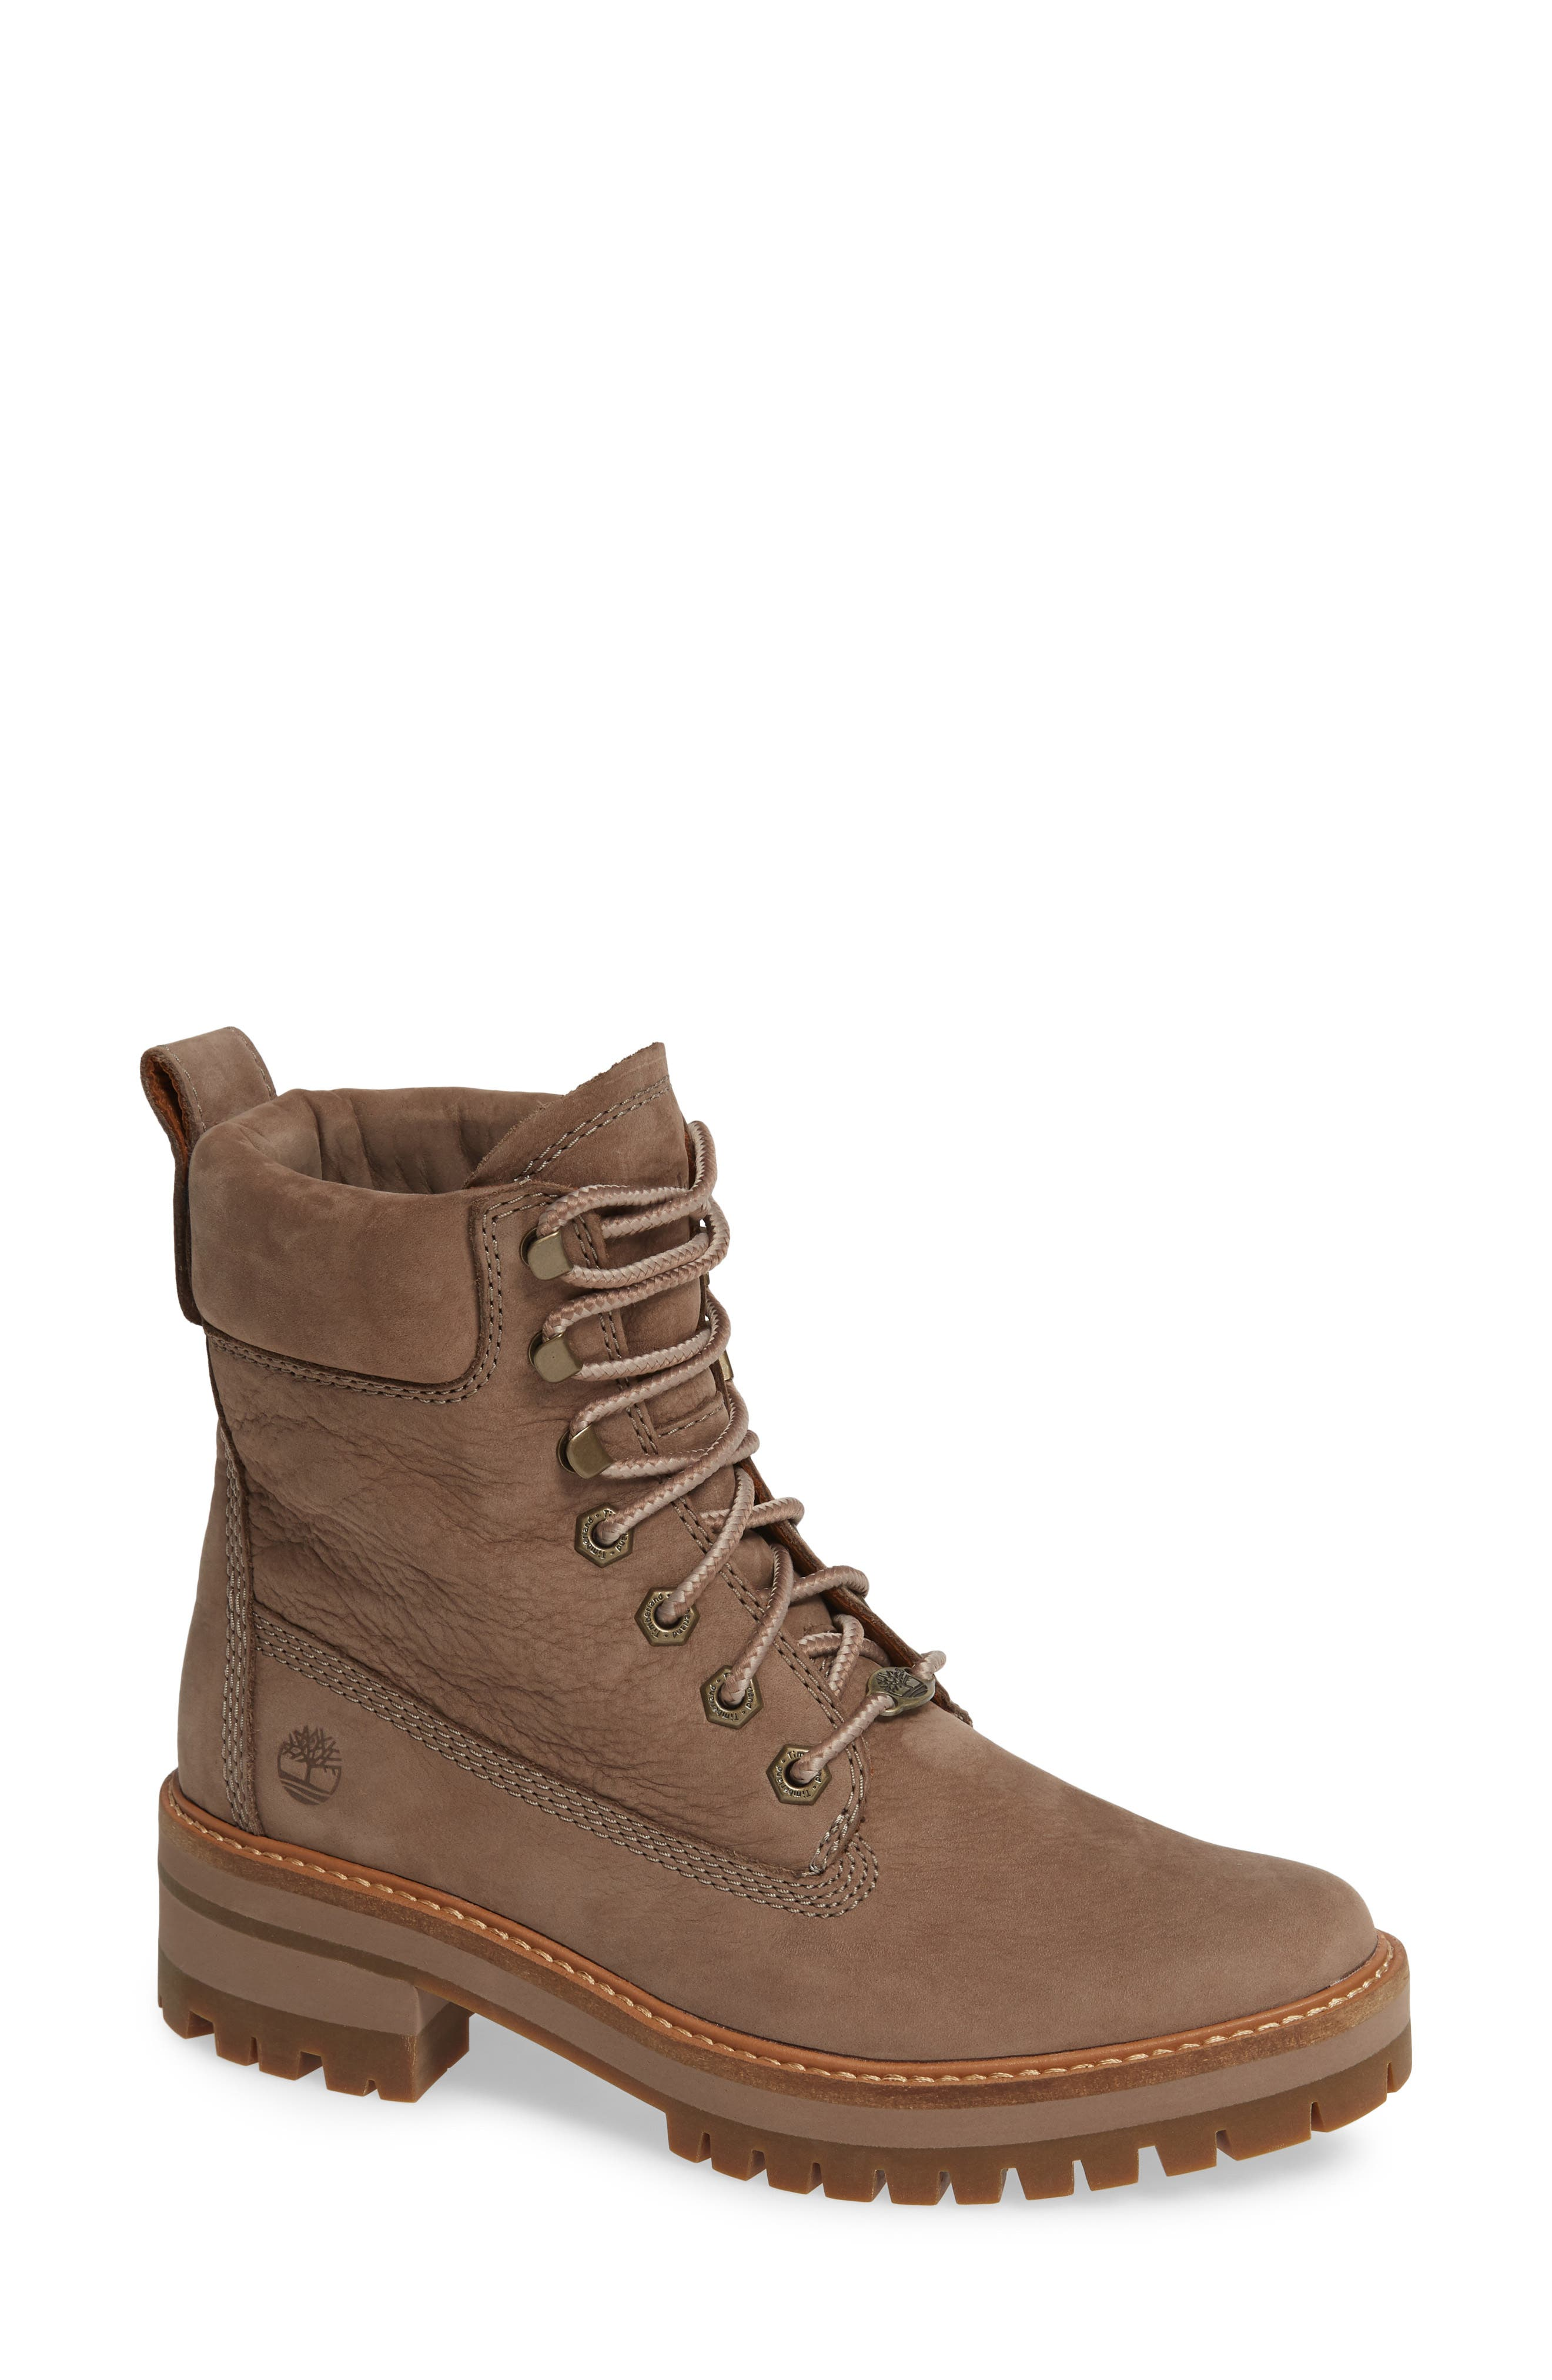 TIMBERLAND Courmayeur Valley Water Resistant Hiking Boot, Main, color, TAUPE GREY NUBUCK